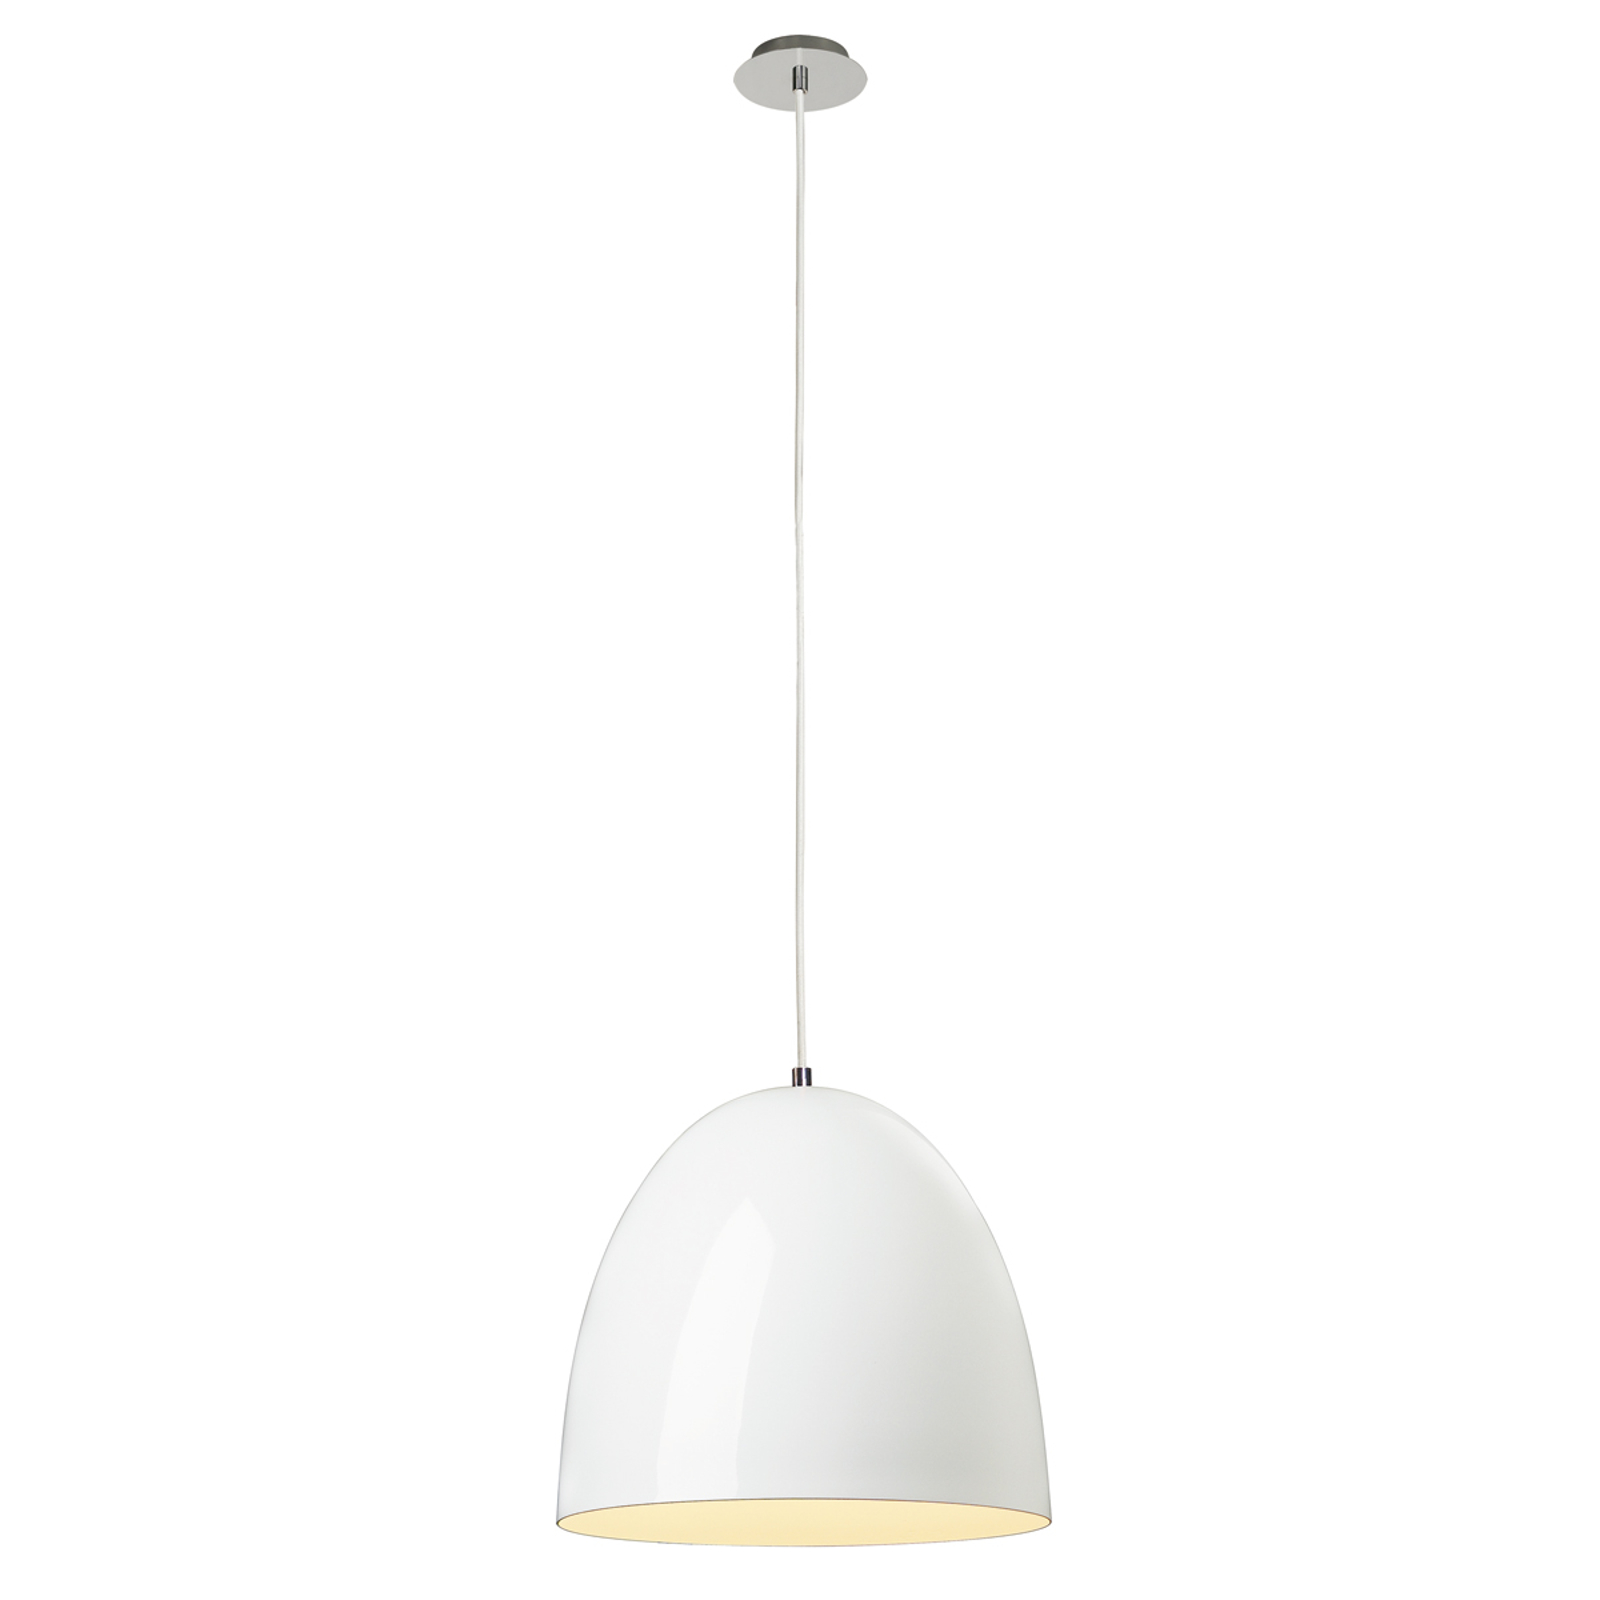 Smaakvolle hanglamp PD115, wit